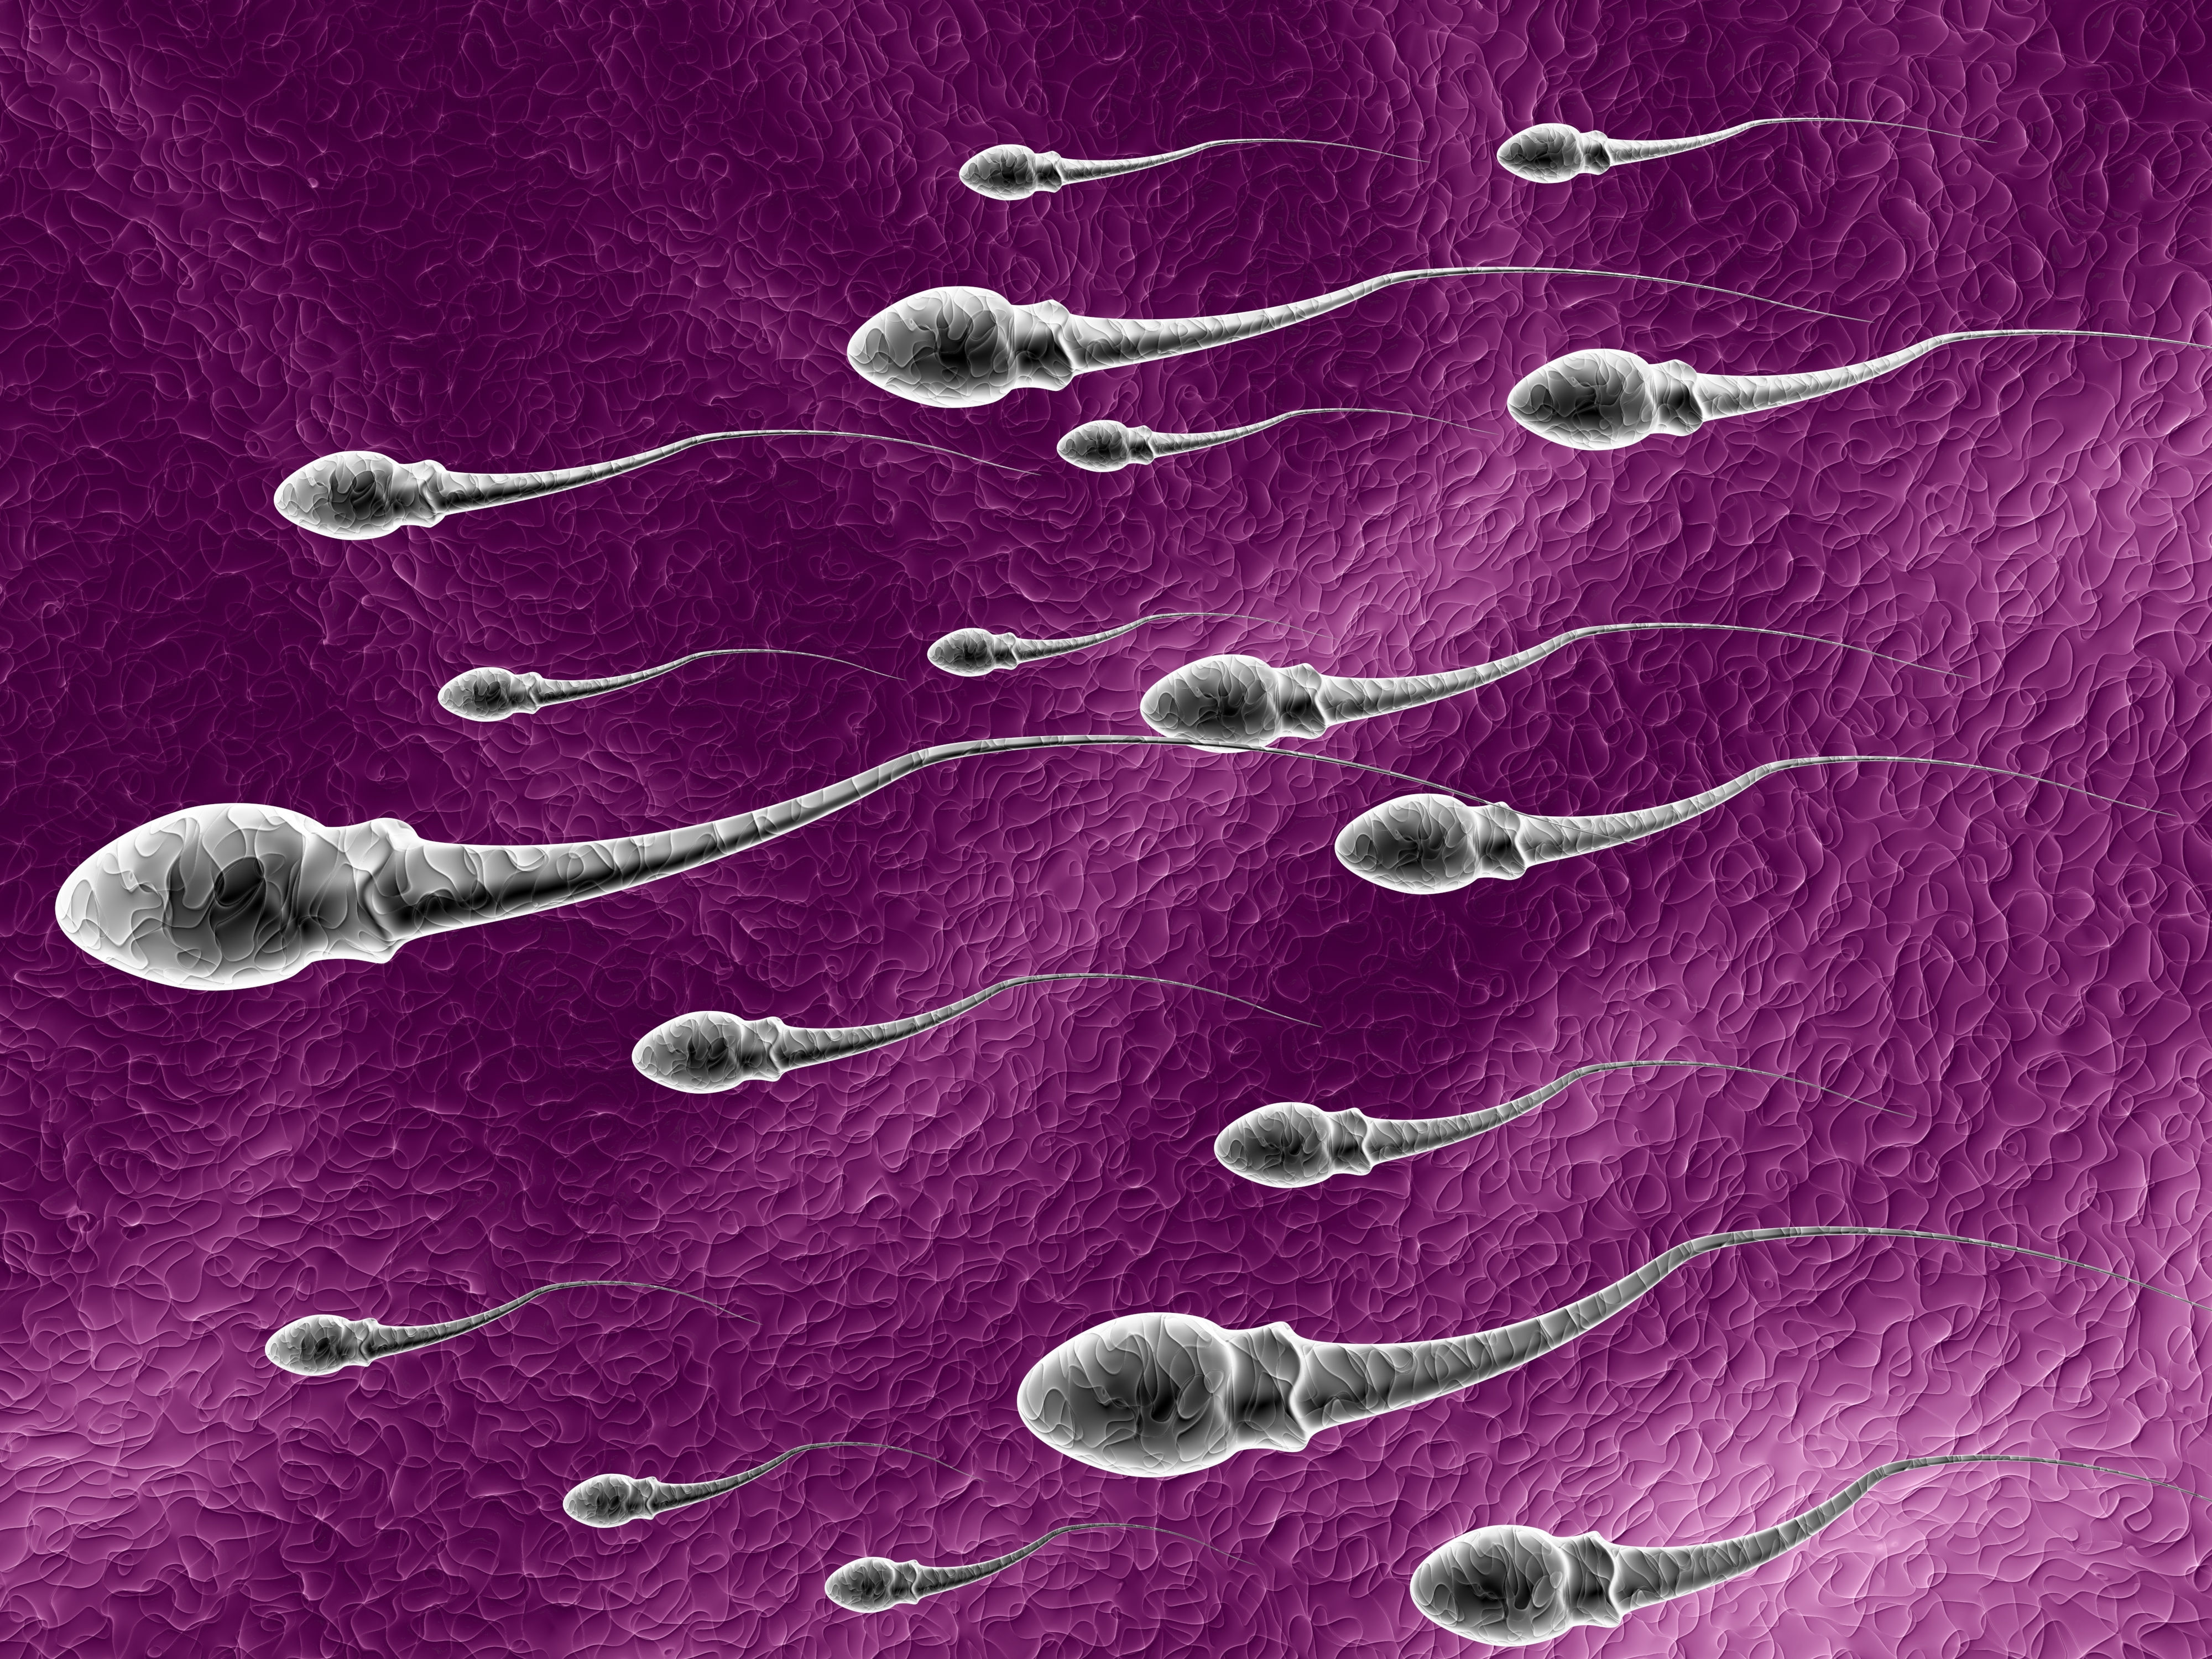 Stem Cell-Based Sperm Successfully Created From Skin Of Infertile Men: A Scientific First